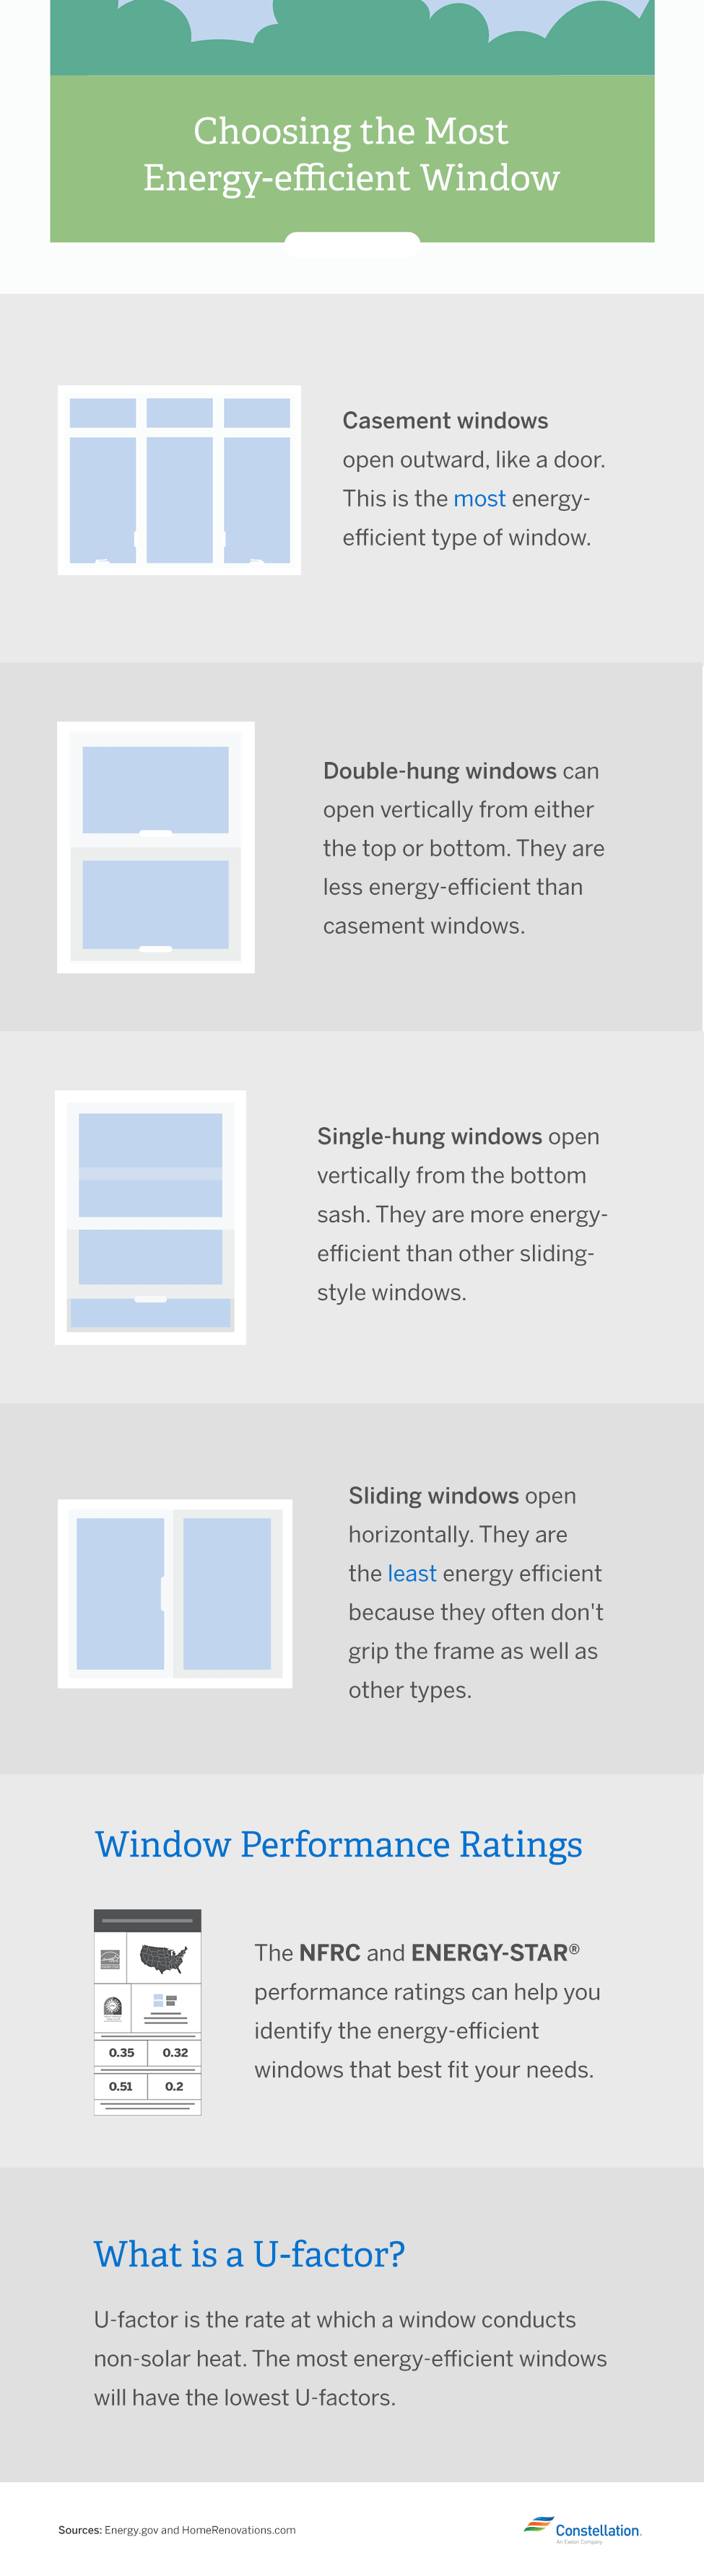 Energy efficient windows simple energy efficient windows with energy efficient windows simple - The basics about energy efficient windows ...